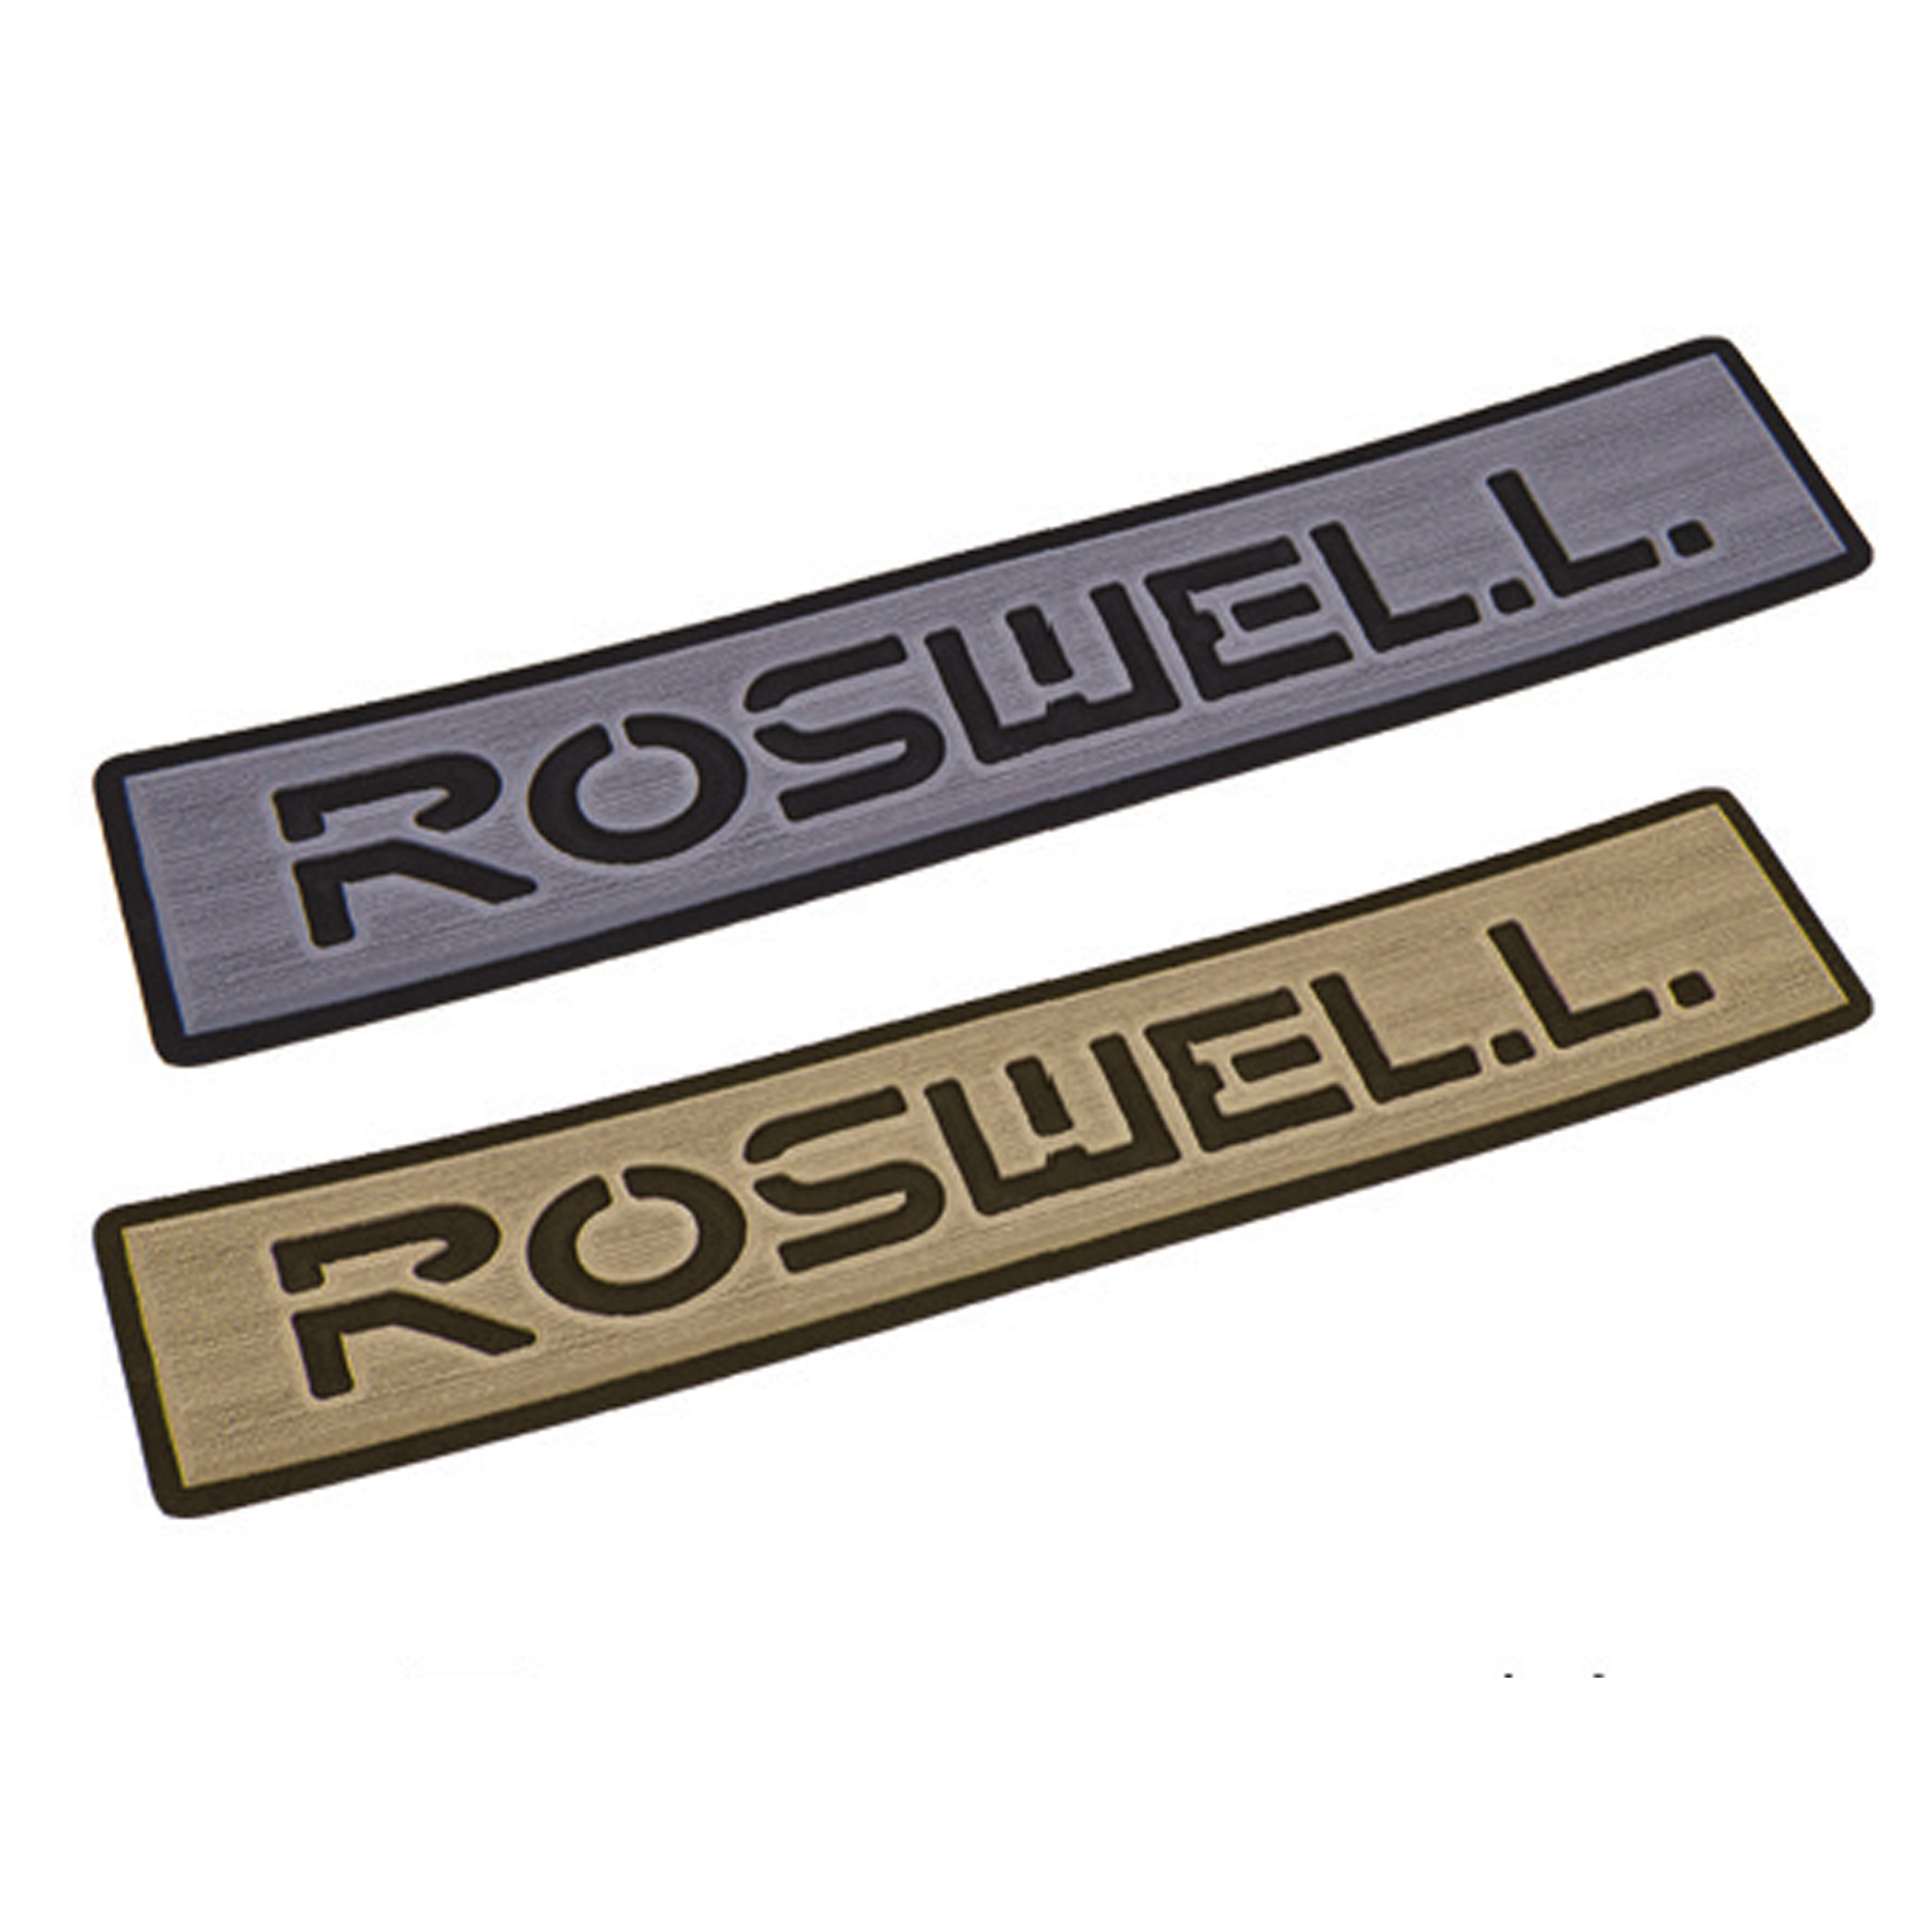 LOGO STEP PAD - GREY ROSWELL 2018